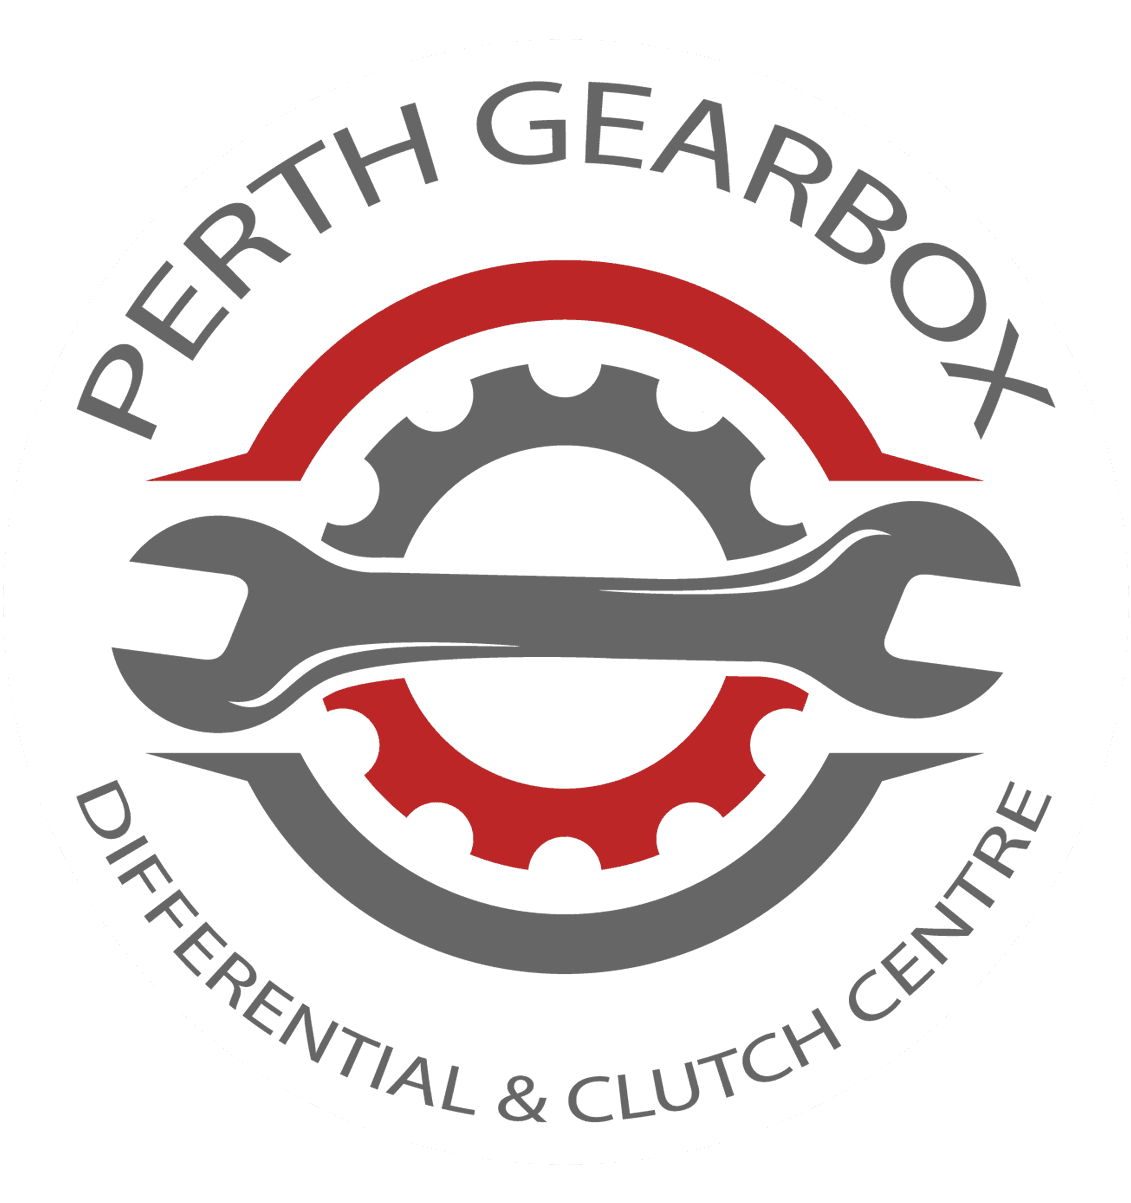 perth gearbox differntial & clutch centre logo